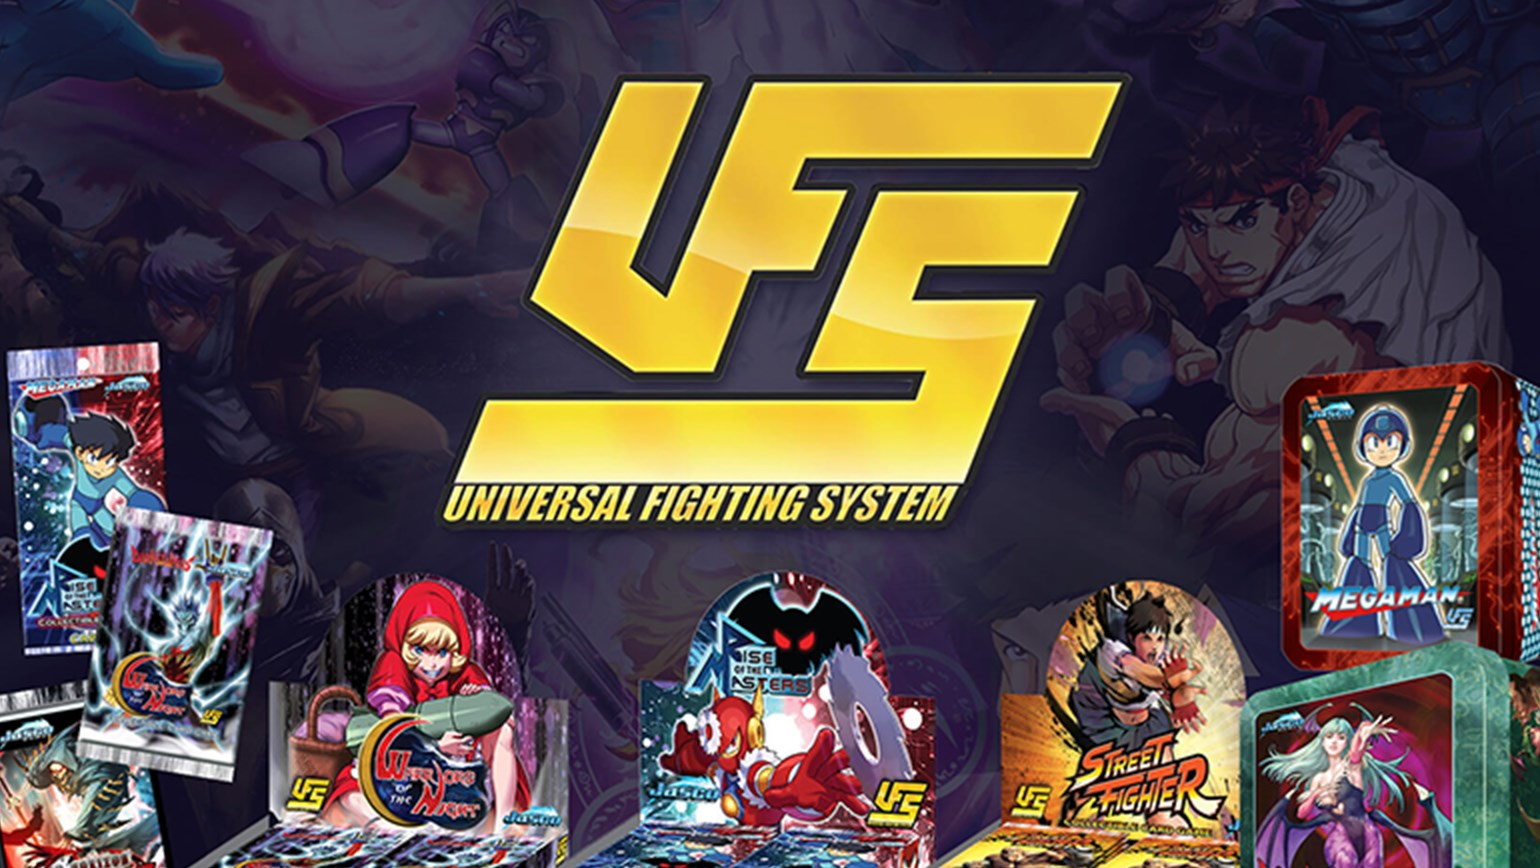 Jasco Games' Universal Fighting System Now Available